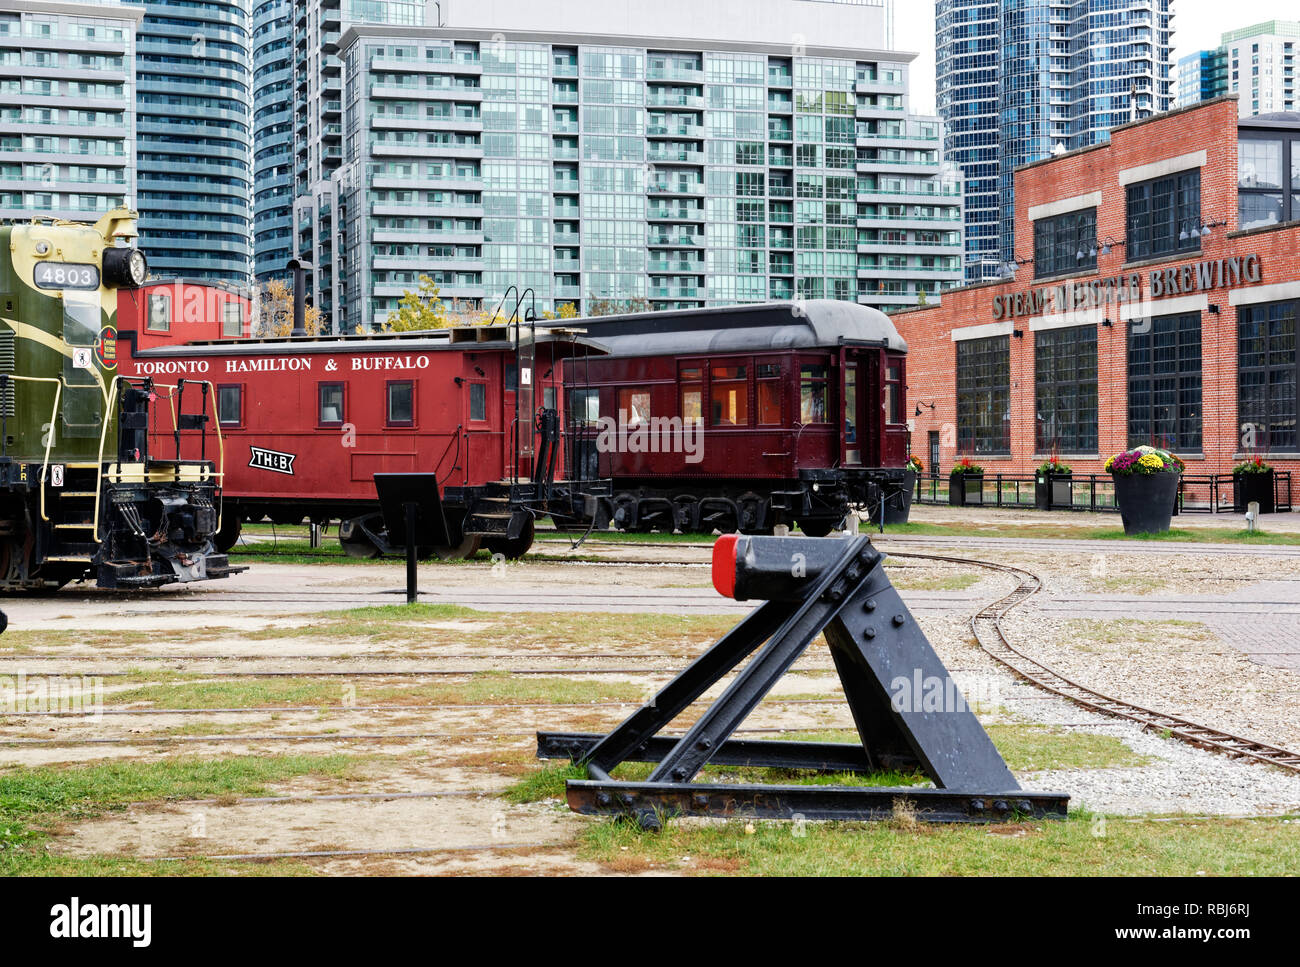 Trains from the Toronto Railway Museum and the Steam Whistle Brewing building, Toronto, Canada - Stock Image